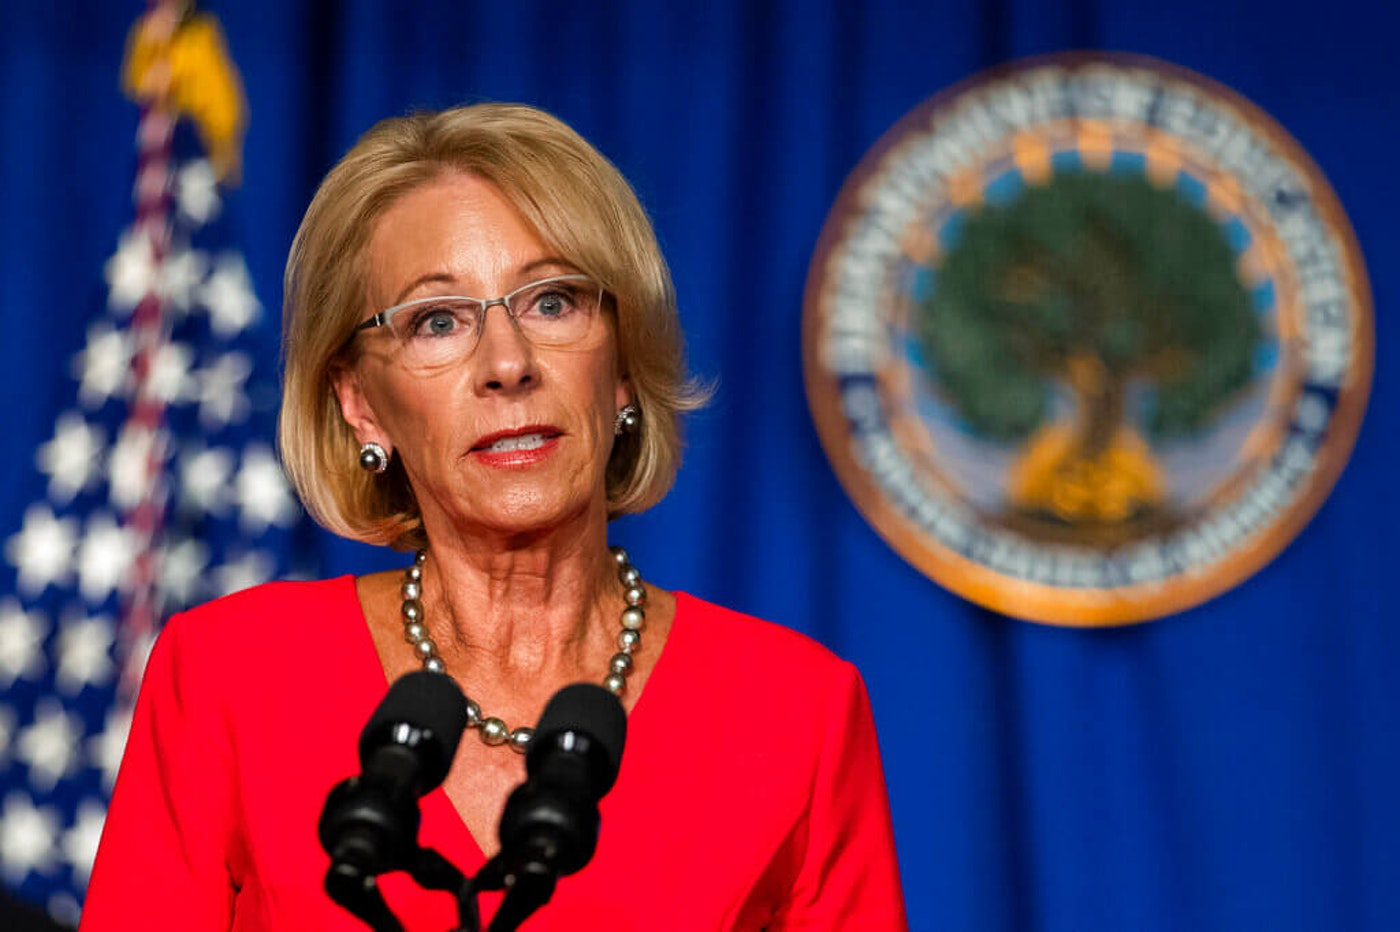 In this July 8, 2020, photo, Education Secretary Betsy DeVos speaks during a briefing at the Department of Education building in Washington. On Wednesday, July 15, 2020, attorneys general from 22 states plus the District of Columbia sued the Trump administration to block new federal rules they say would make it harder for students swindled by for-profit colleges to get relief from their federal loans. The new regulations were put in place last year by Secretary DeVos. (AP Photo/Manuel Balce Ceneta, File)